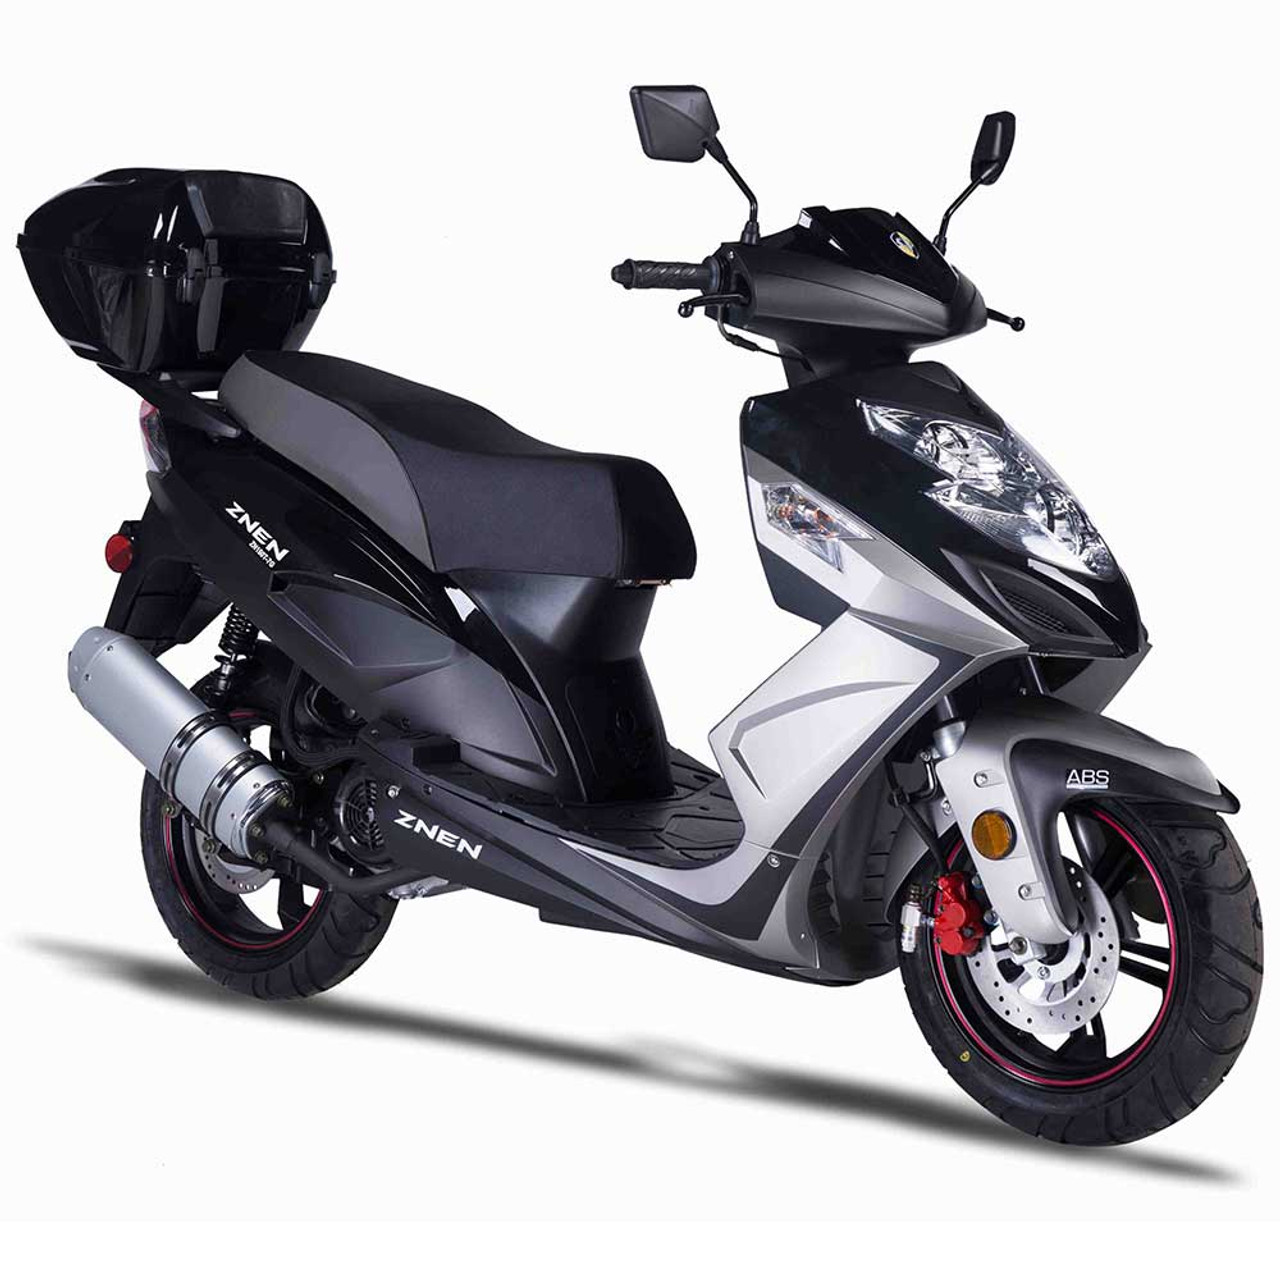 Amigo Znen 2017 ZN150T-7G 149cc Street Legal Scooter, 4 stroke 8.5 HP @ 7000 RPM Air Cooled